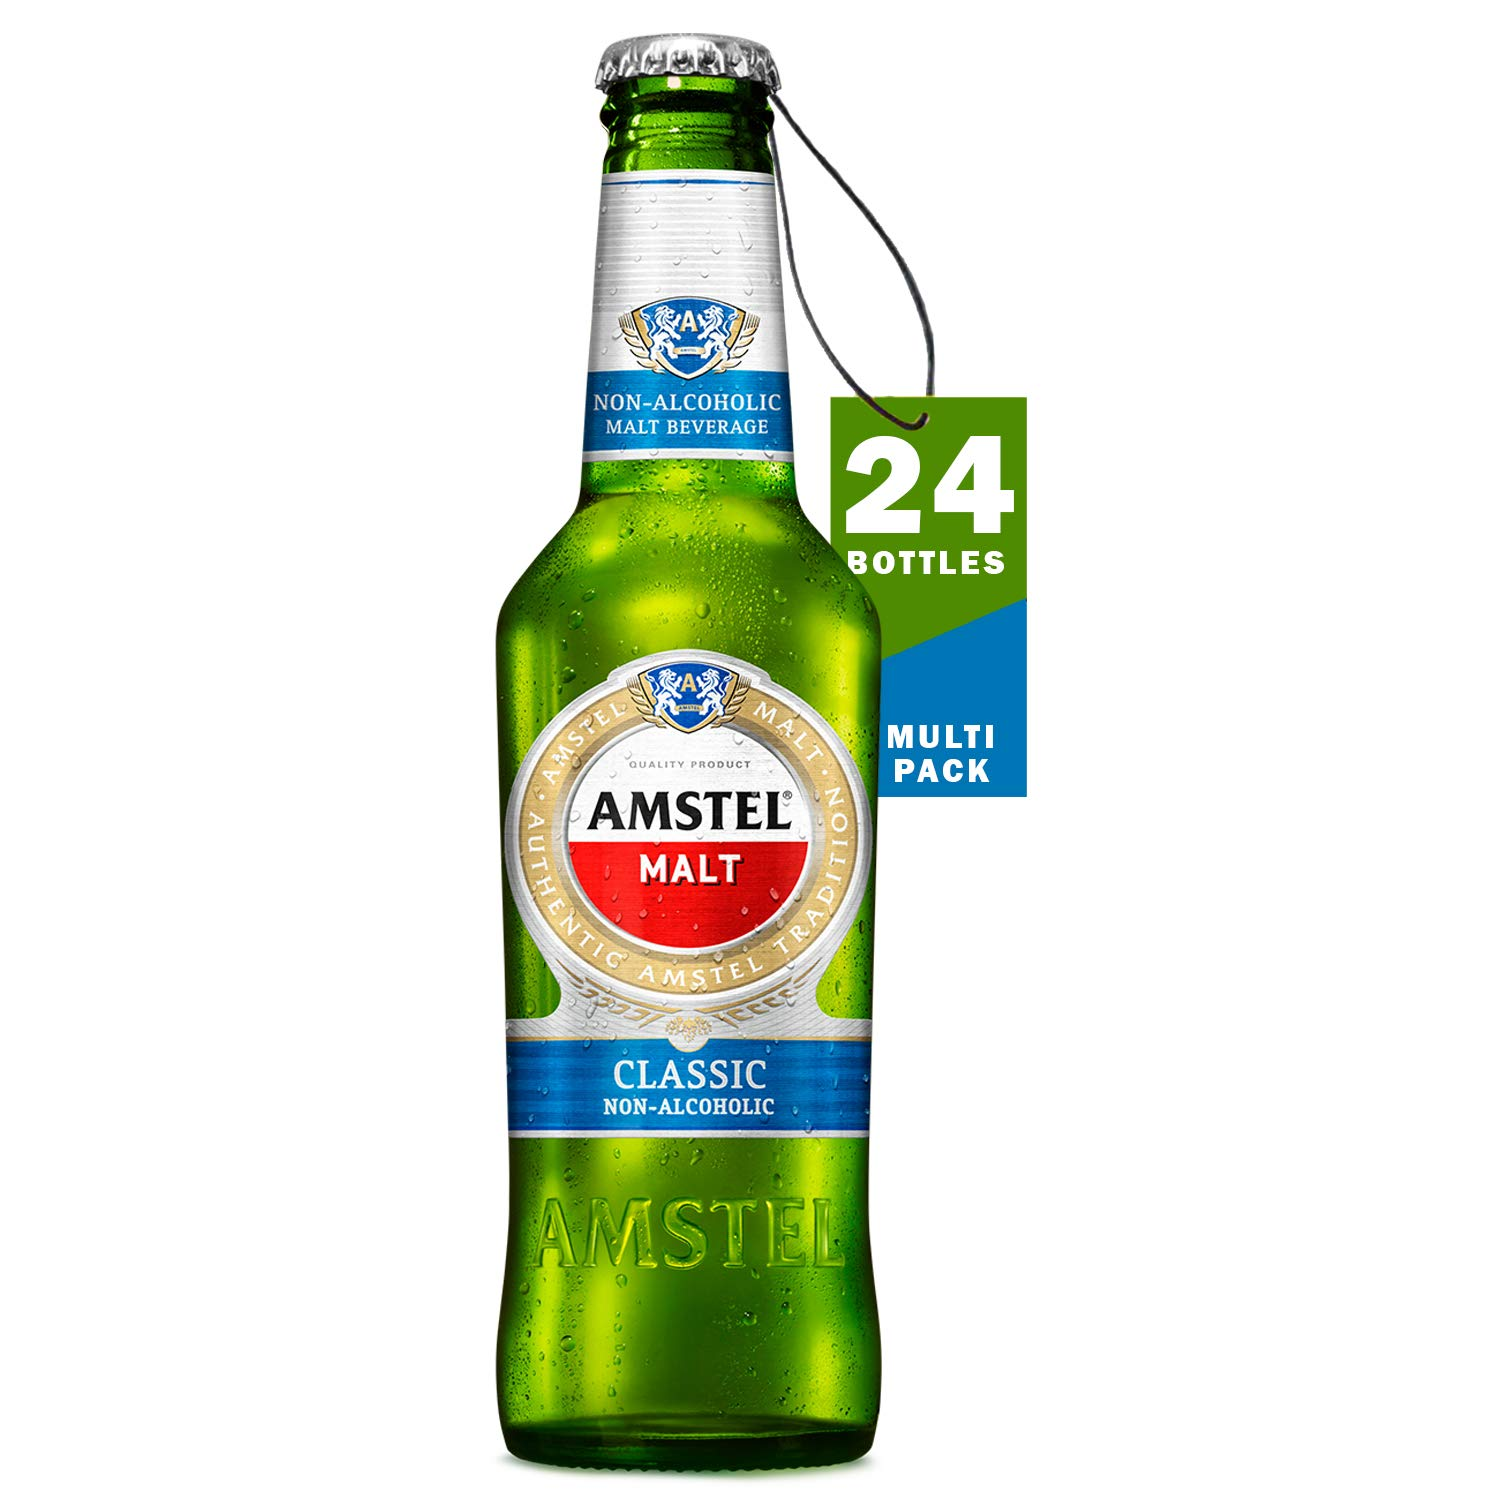 AMSTEL Malt Classic Non-Alcoholic Beverage Beer Bottle, 24 x 330 ml